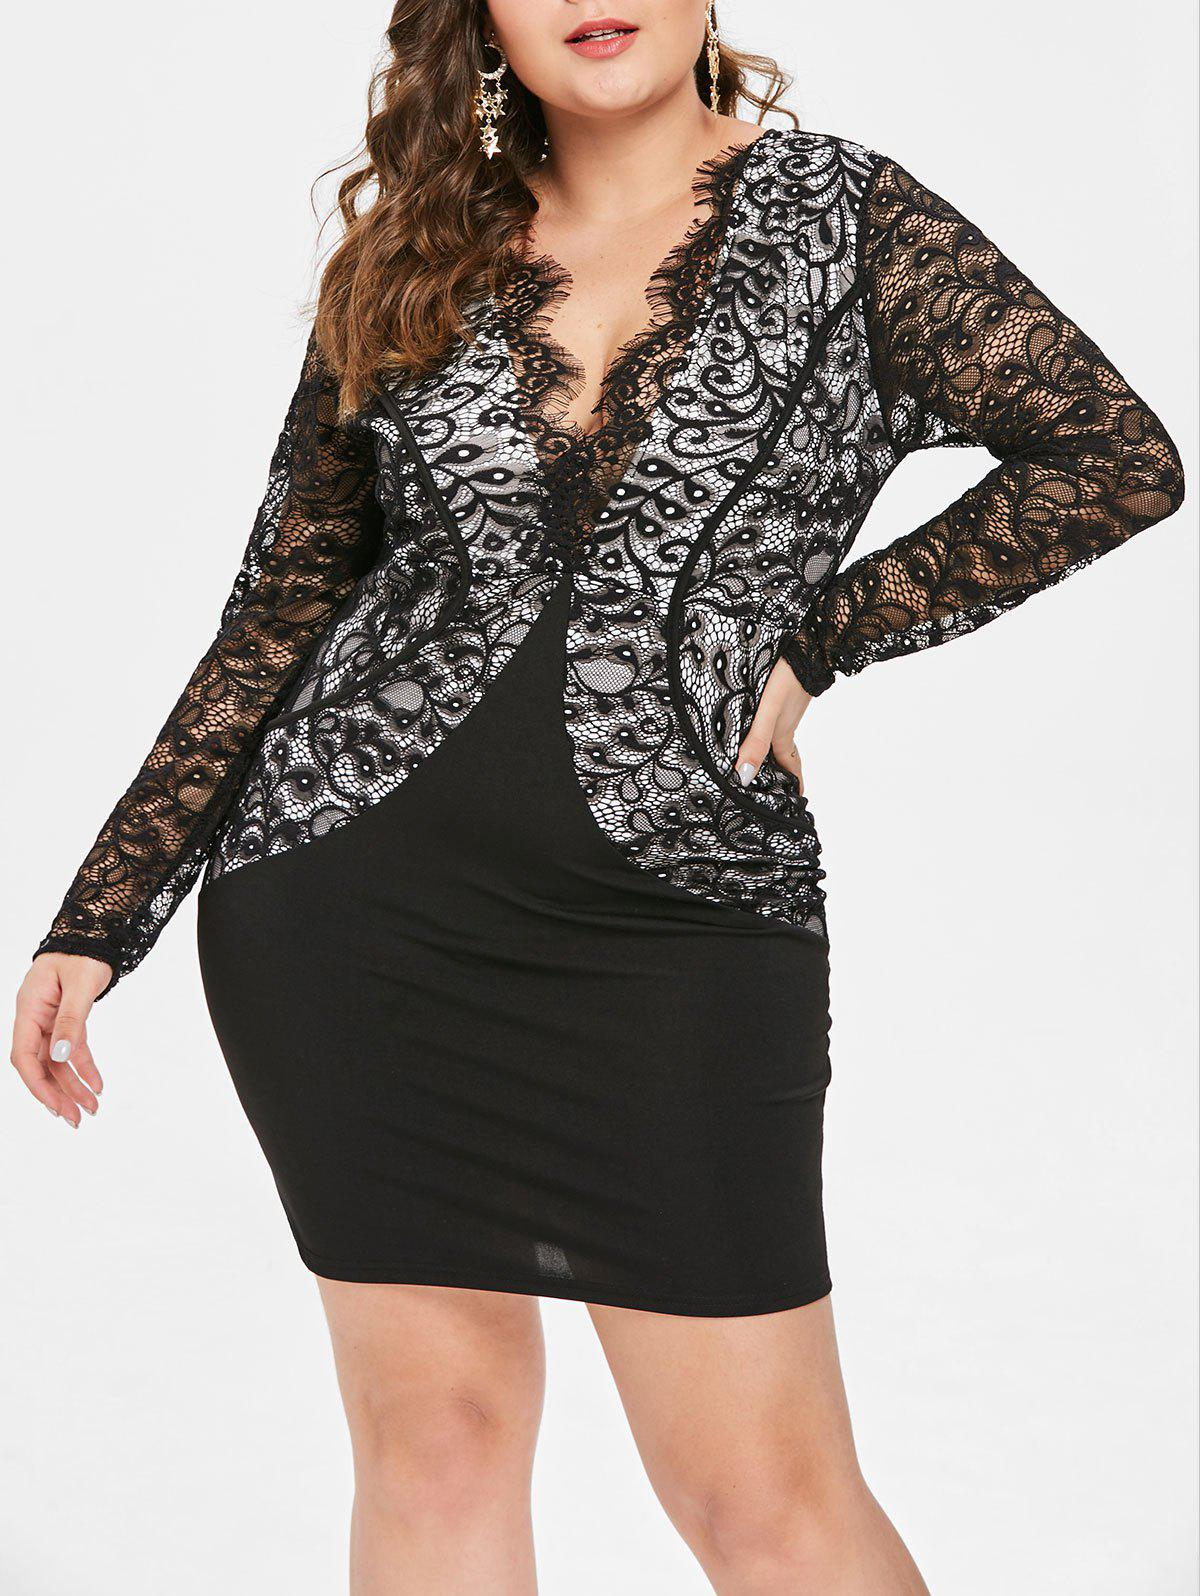 Plus Size Plunging Neckline Lace Insert Dress